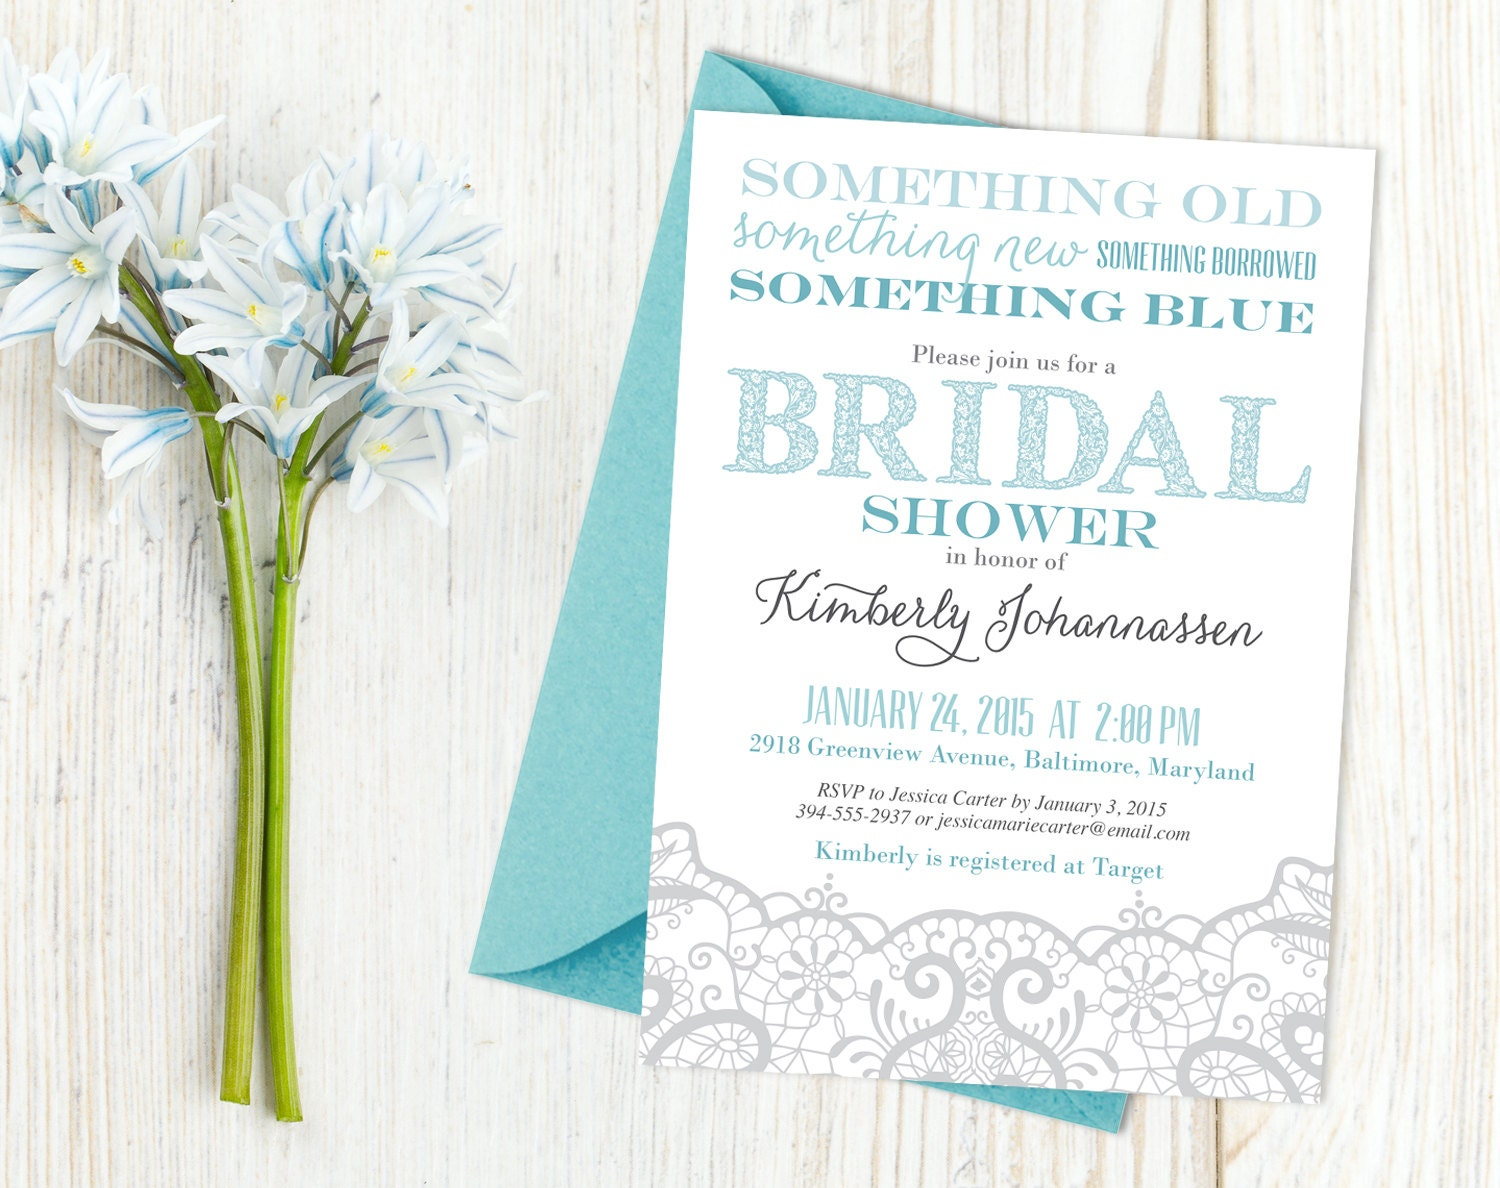 Something Borrowed Wedding Traditions From Around The: Something Borrowed Something Blue Bridal Shower Modern Lace